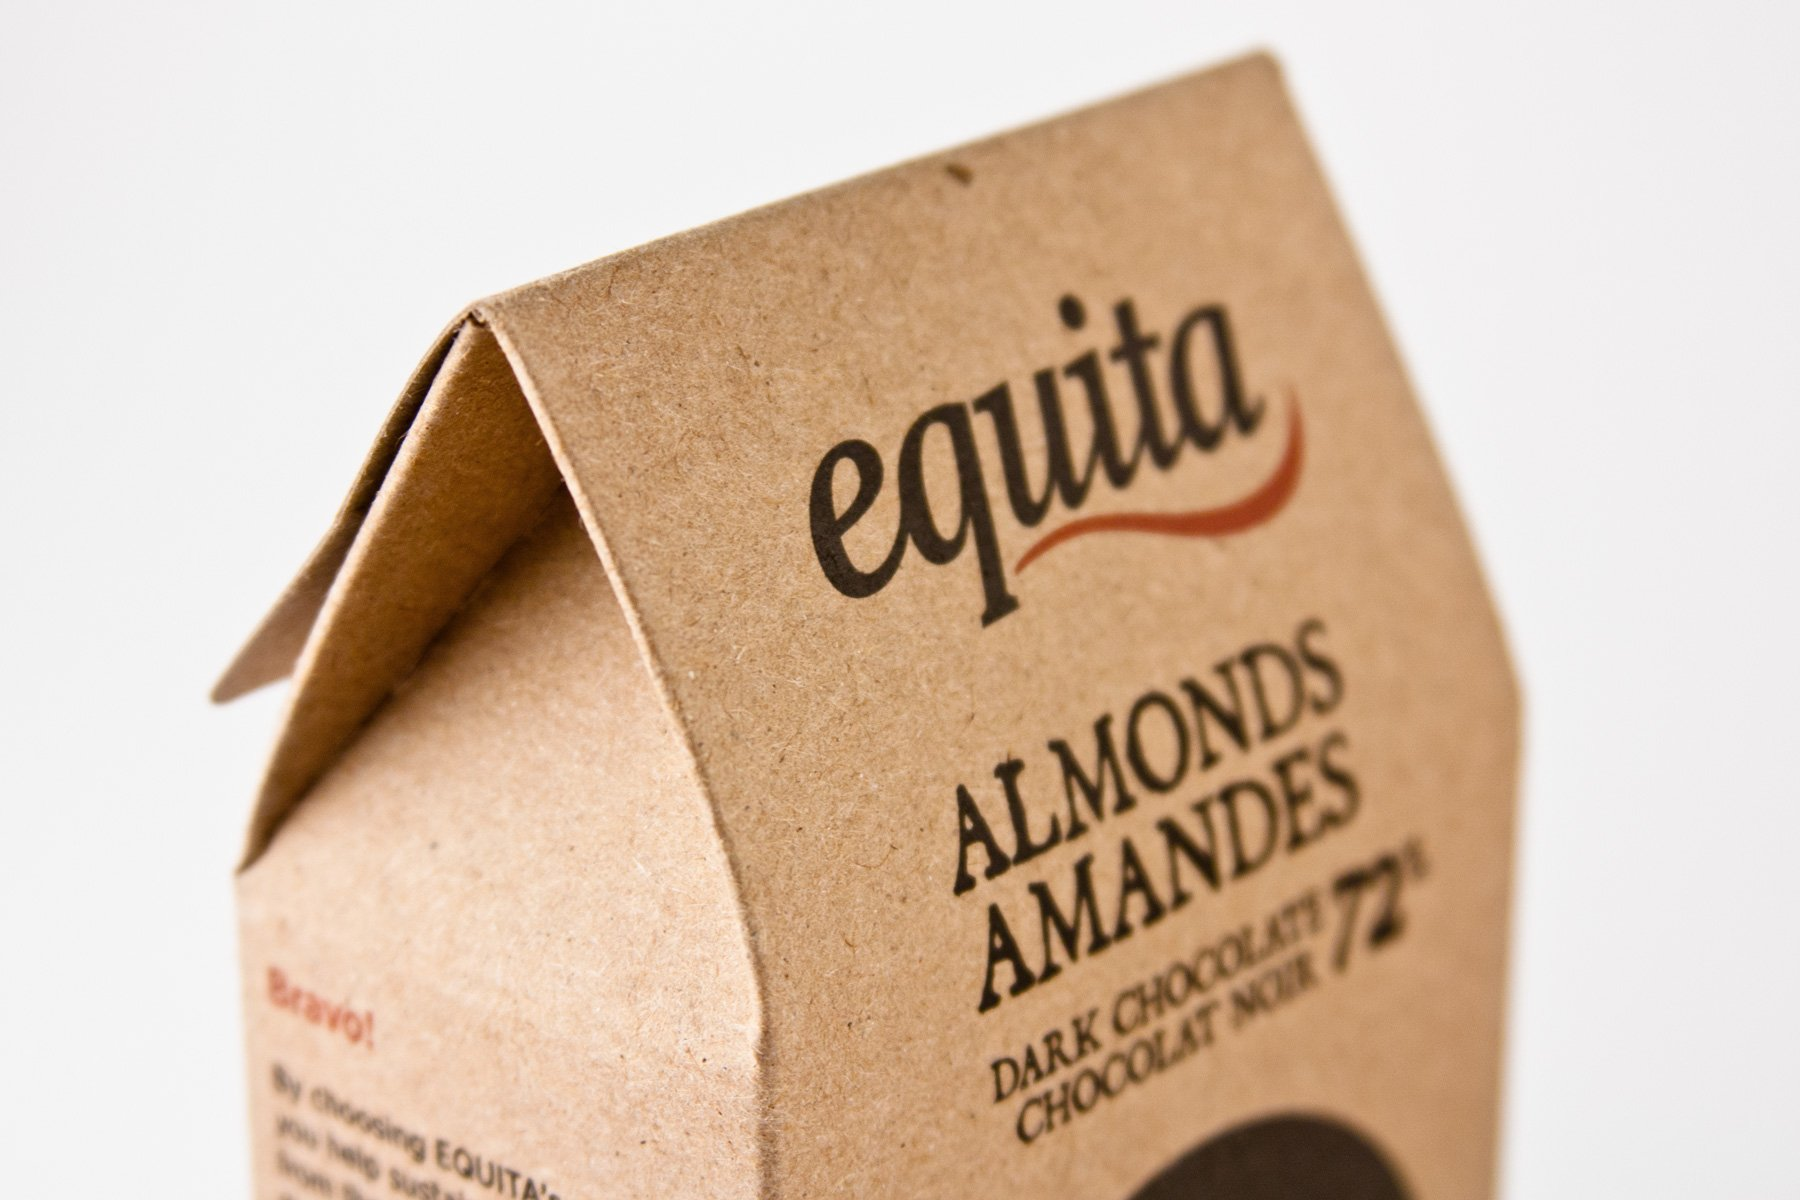 EQI-Packaging-Amandes-Chocolat-4 Equita - Chocolat